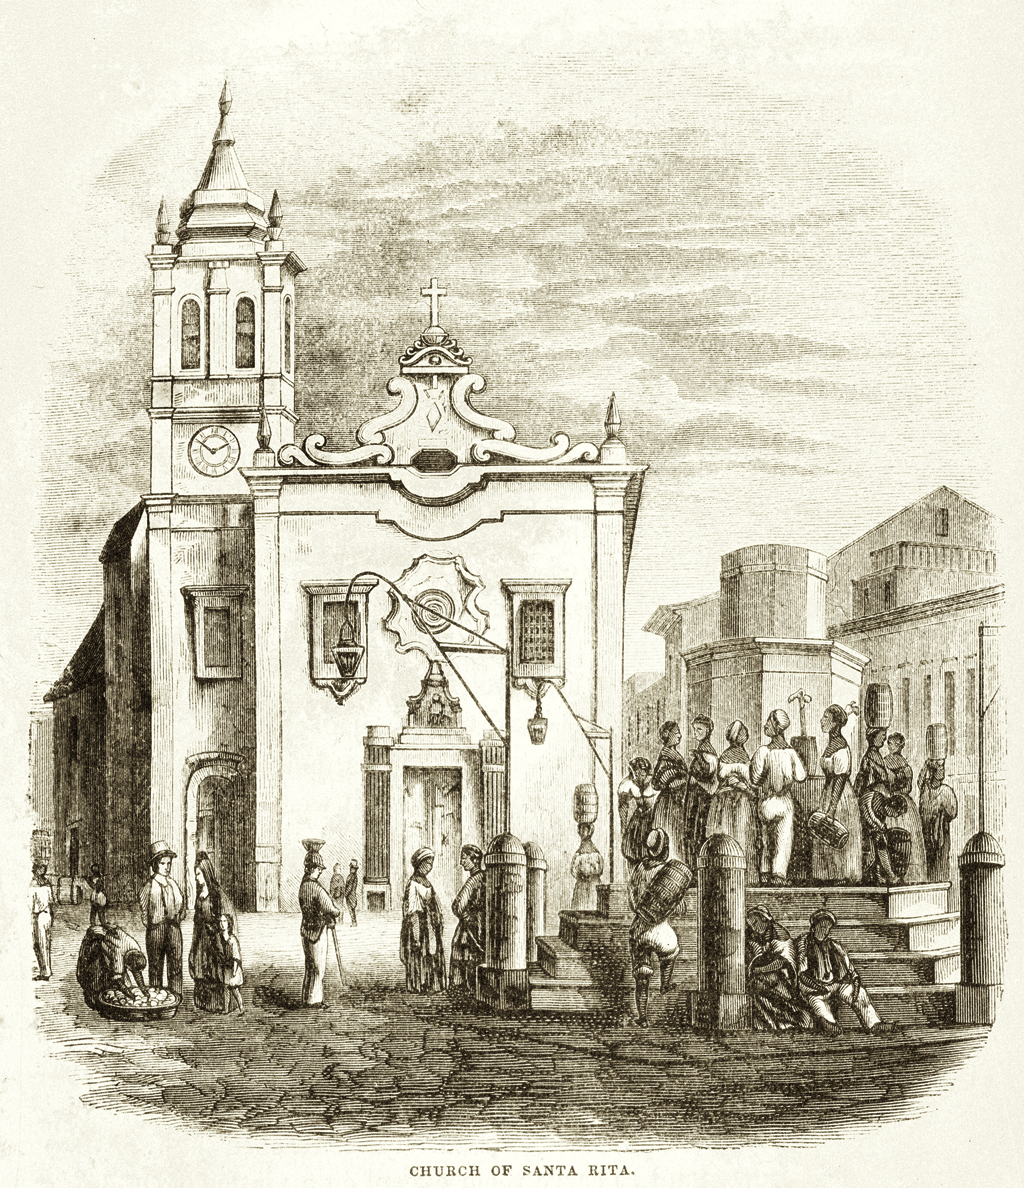 Igreja de Santa Rita. Em: Thomas Ewbank. Life in Brazil, or the land of the cocoa and the palm. London: Sampson Low, Son & Cia. New York: Harper and Brothers, 1856. OR 0357